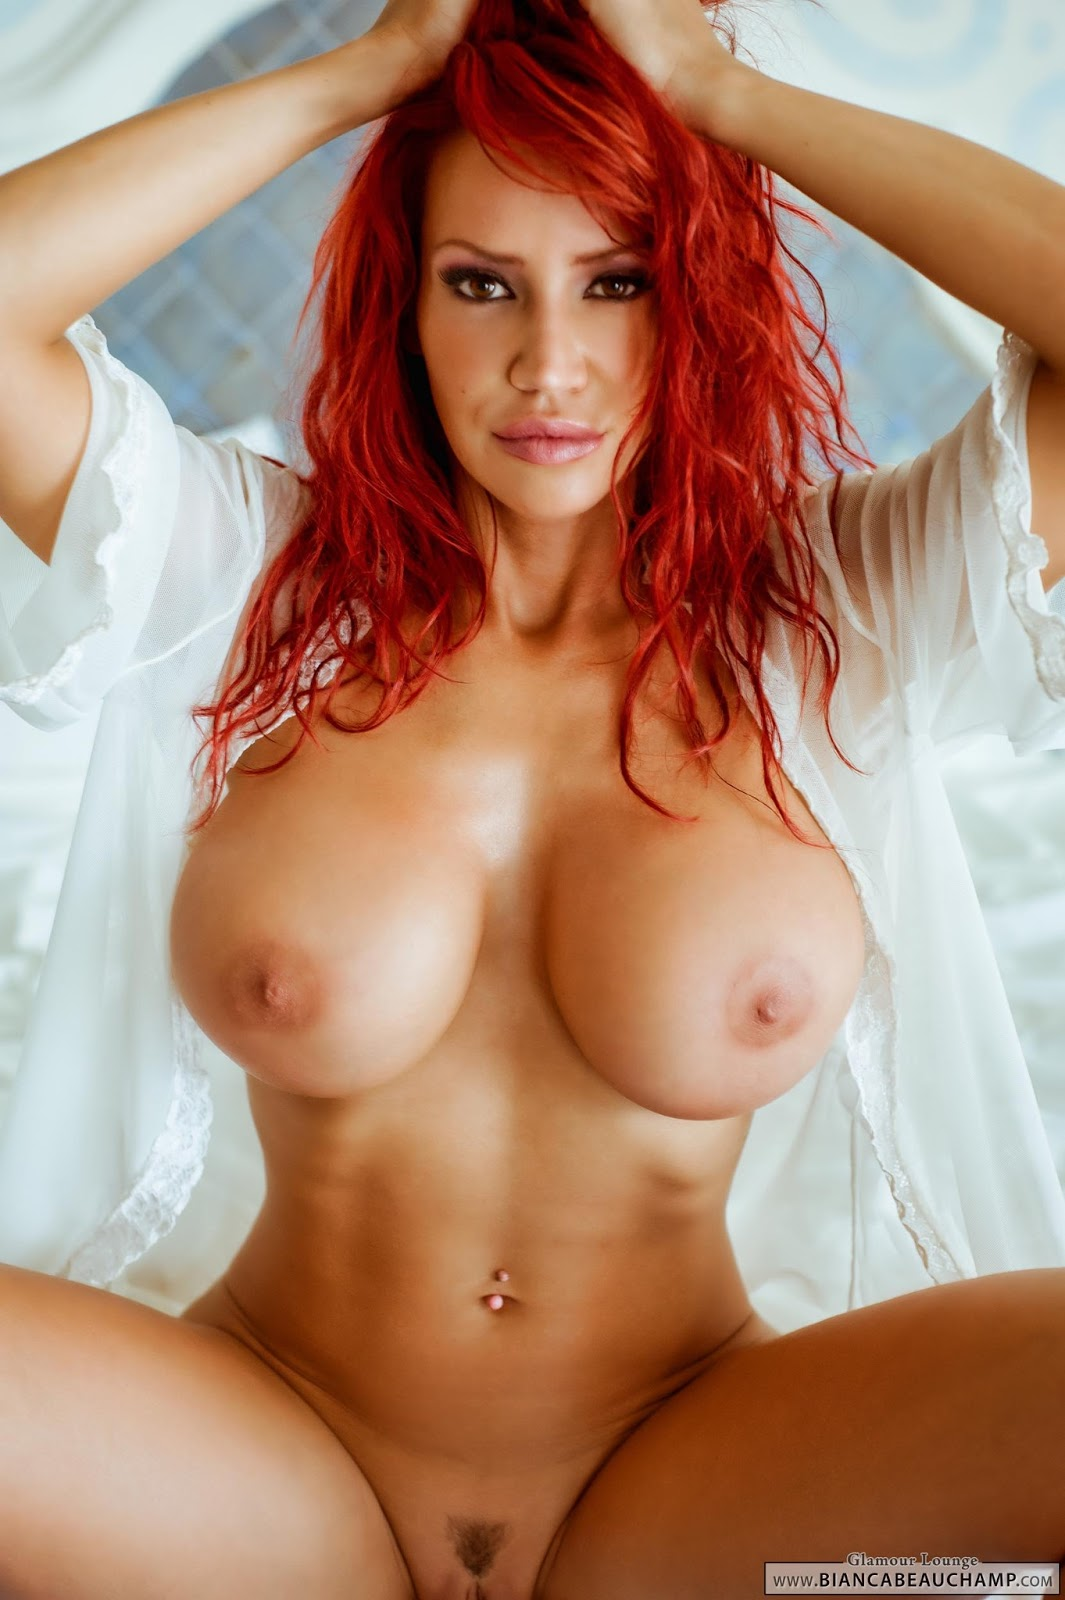 Lindos Culos Bianca Beauchamp Hot Naked Pussy